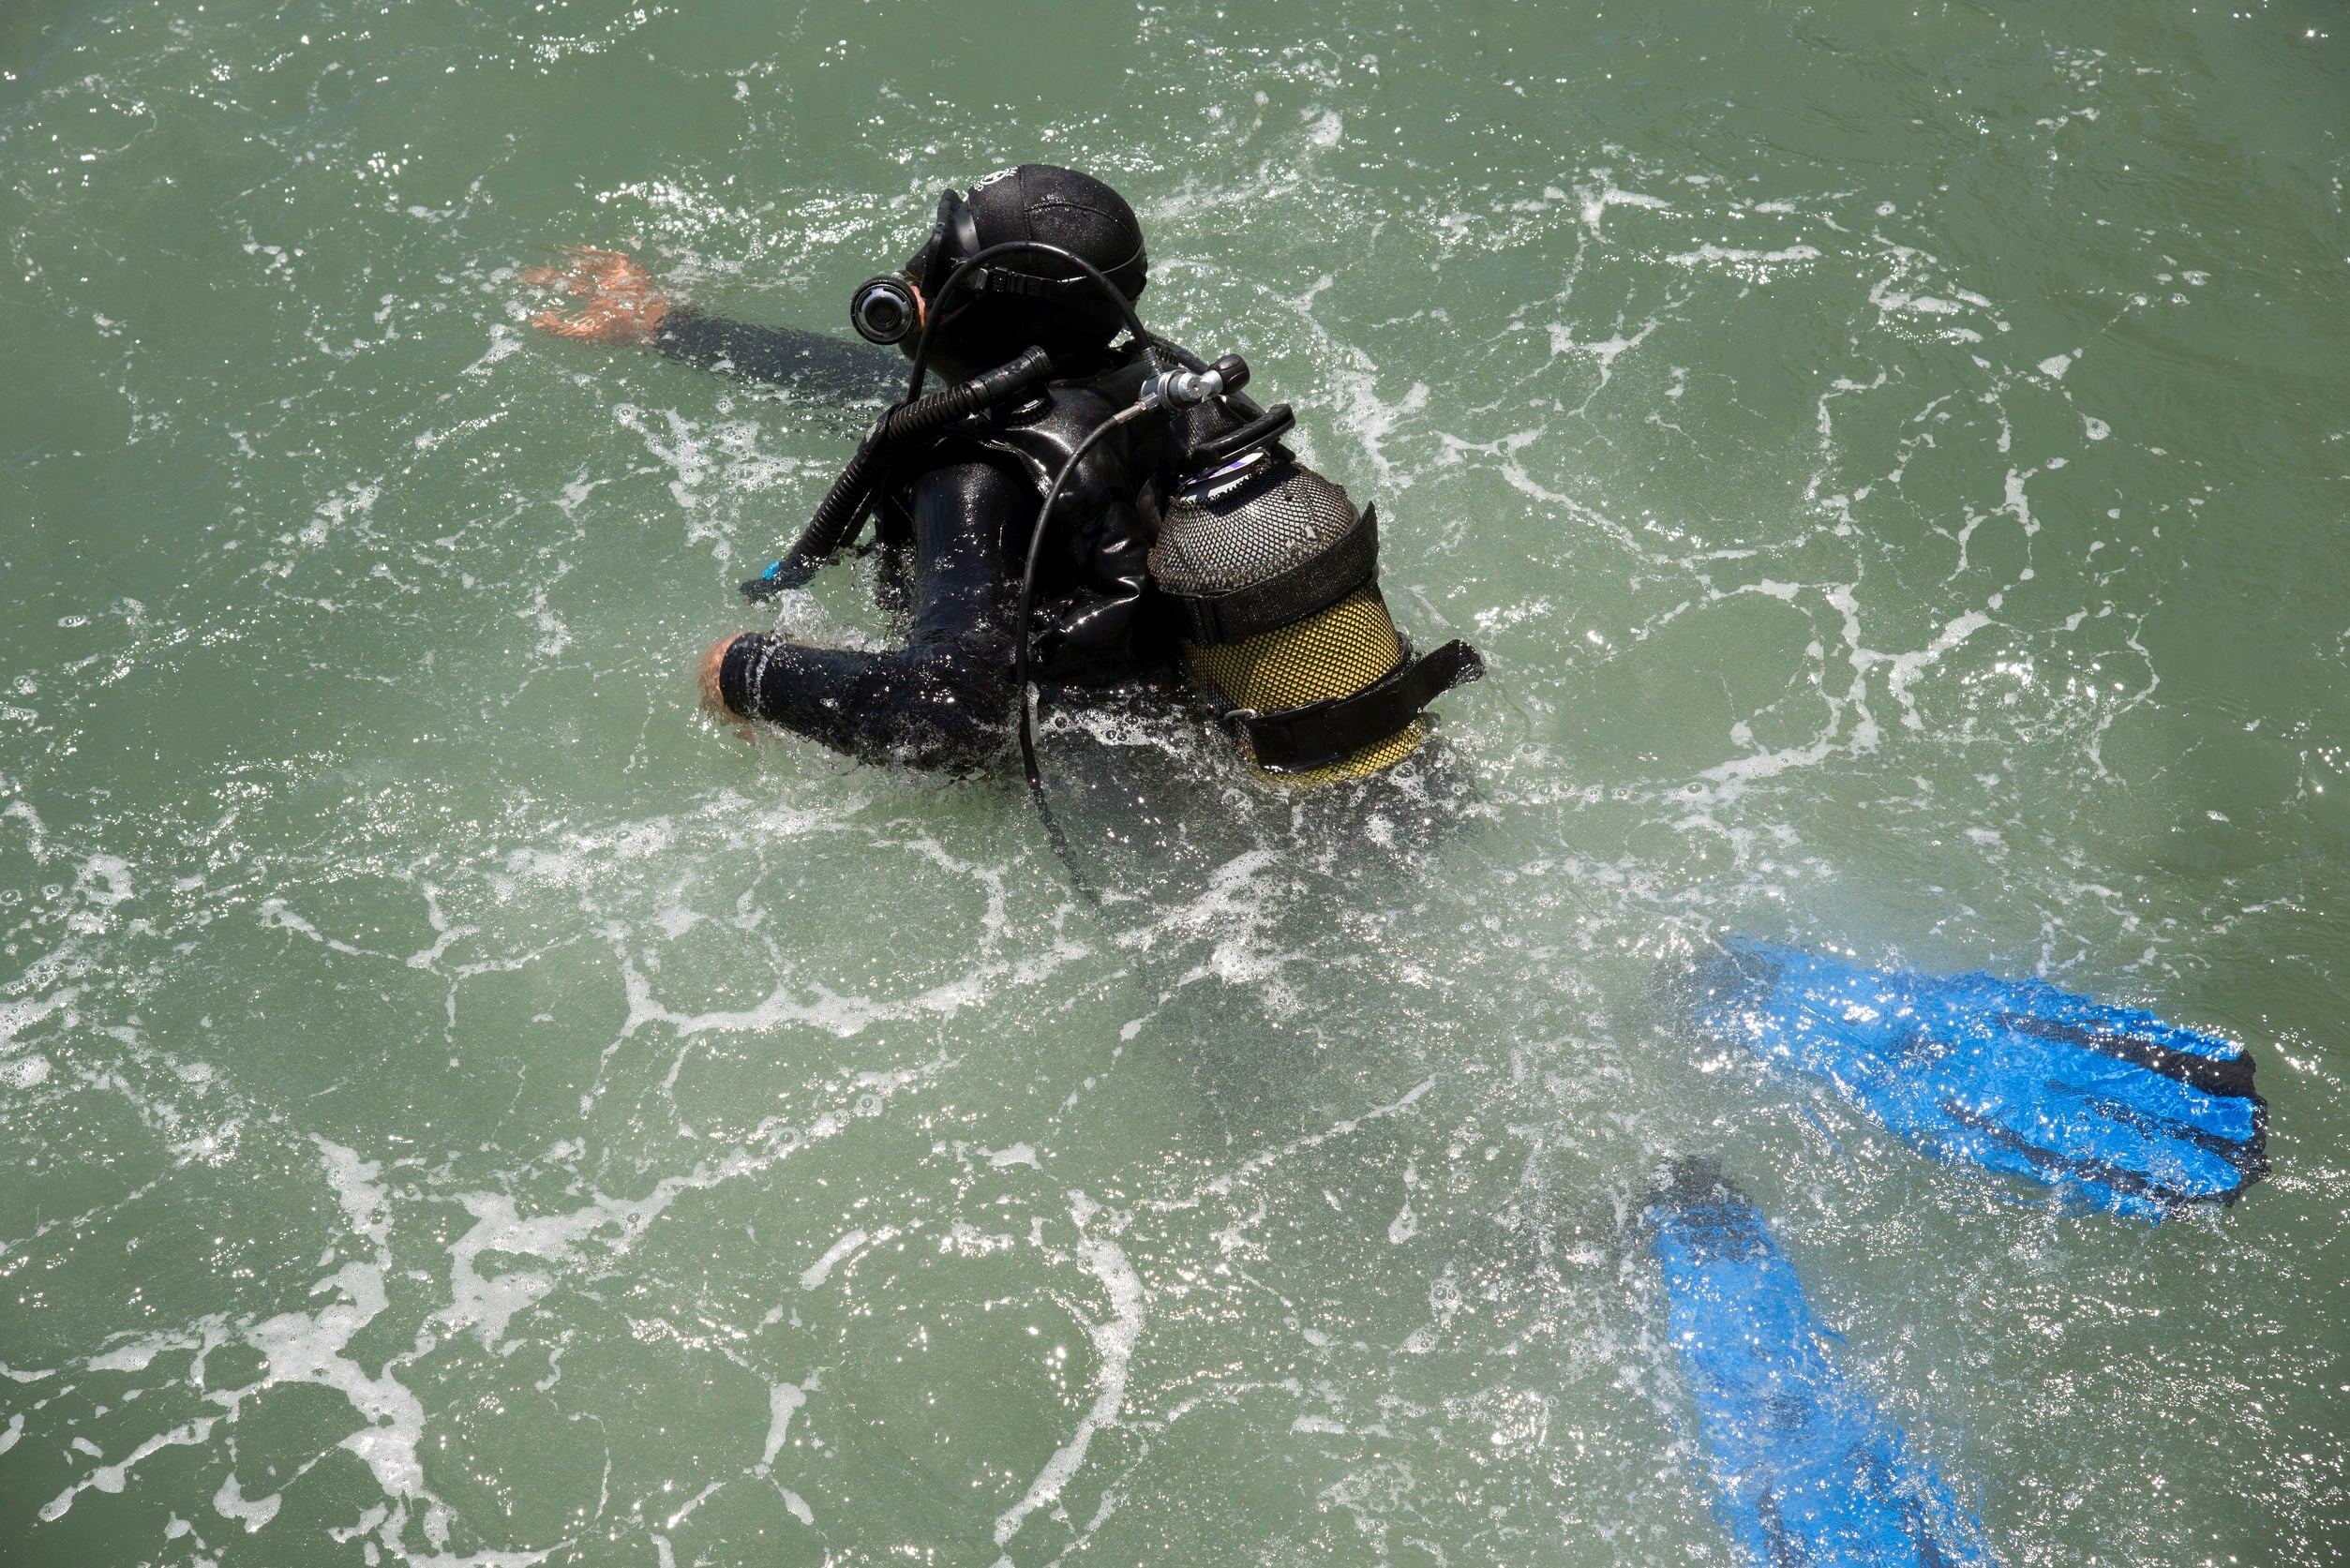 Common Causes of Scuba Diving Accidents in Florida